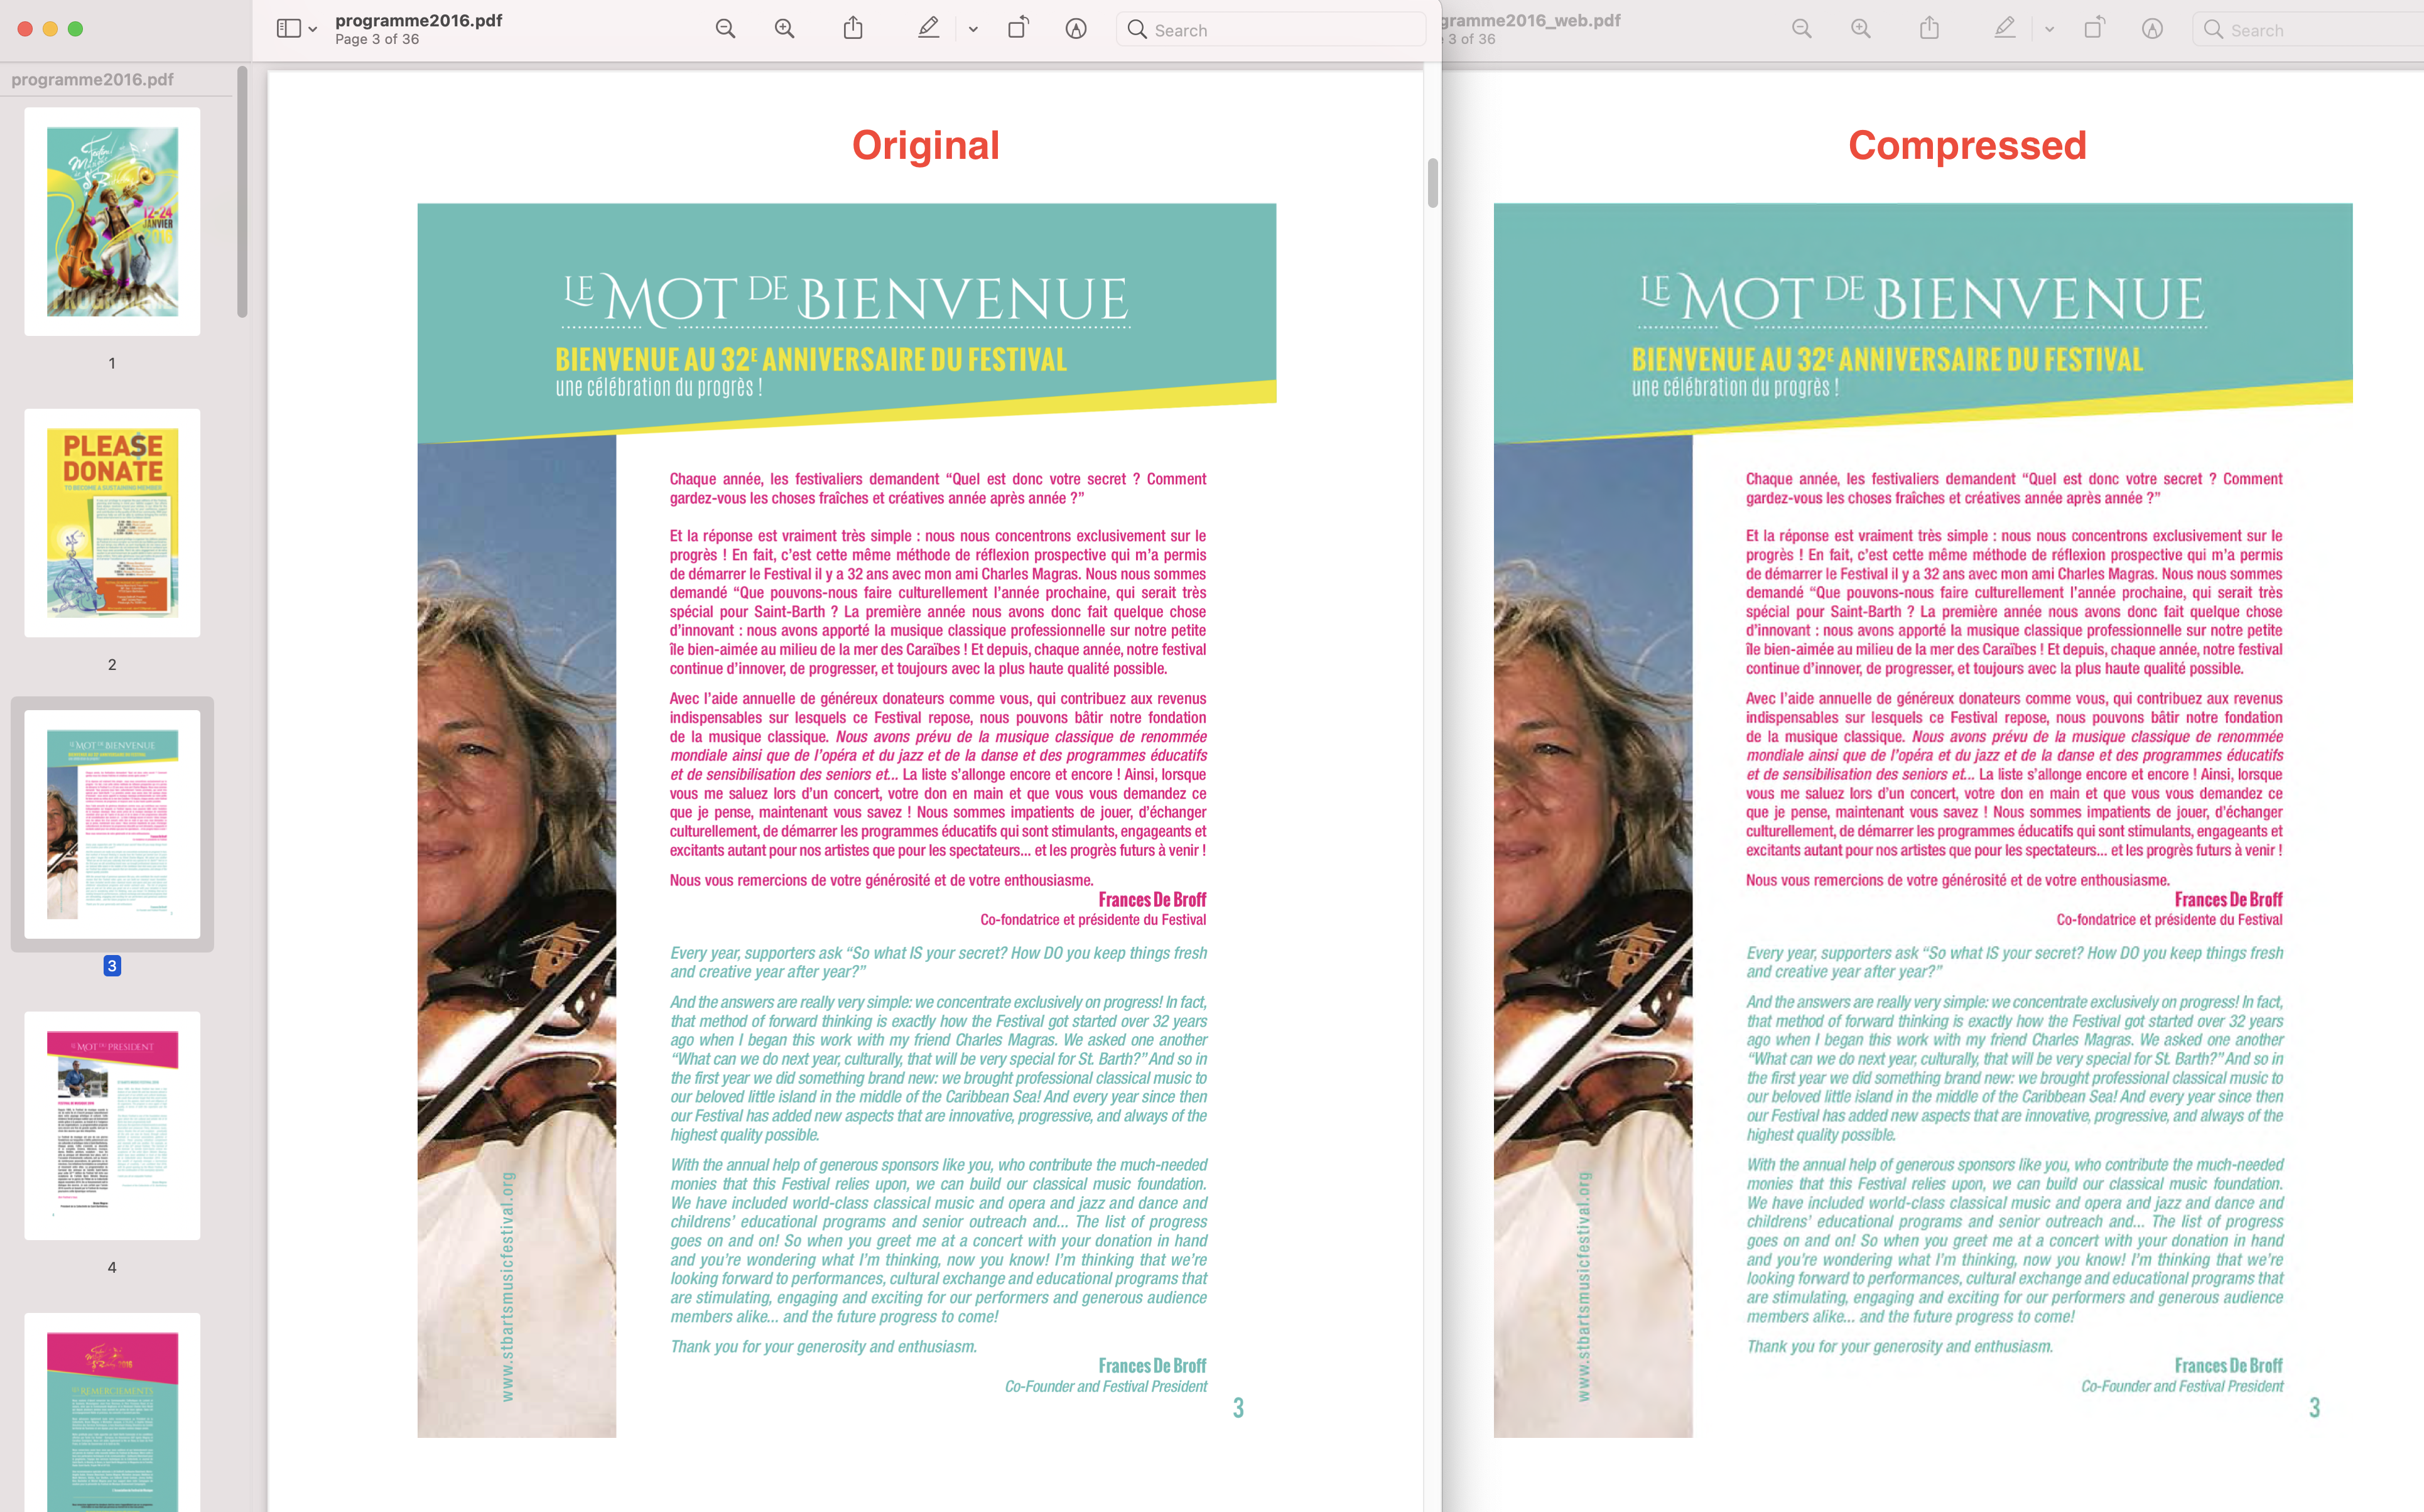 Original 84.6MB PDF on left, and Compressed 5.4MB PDF on Right